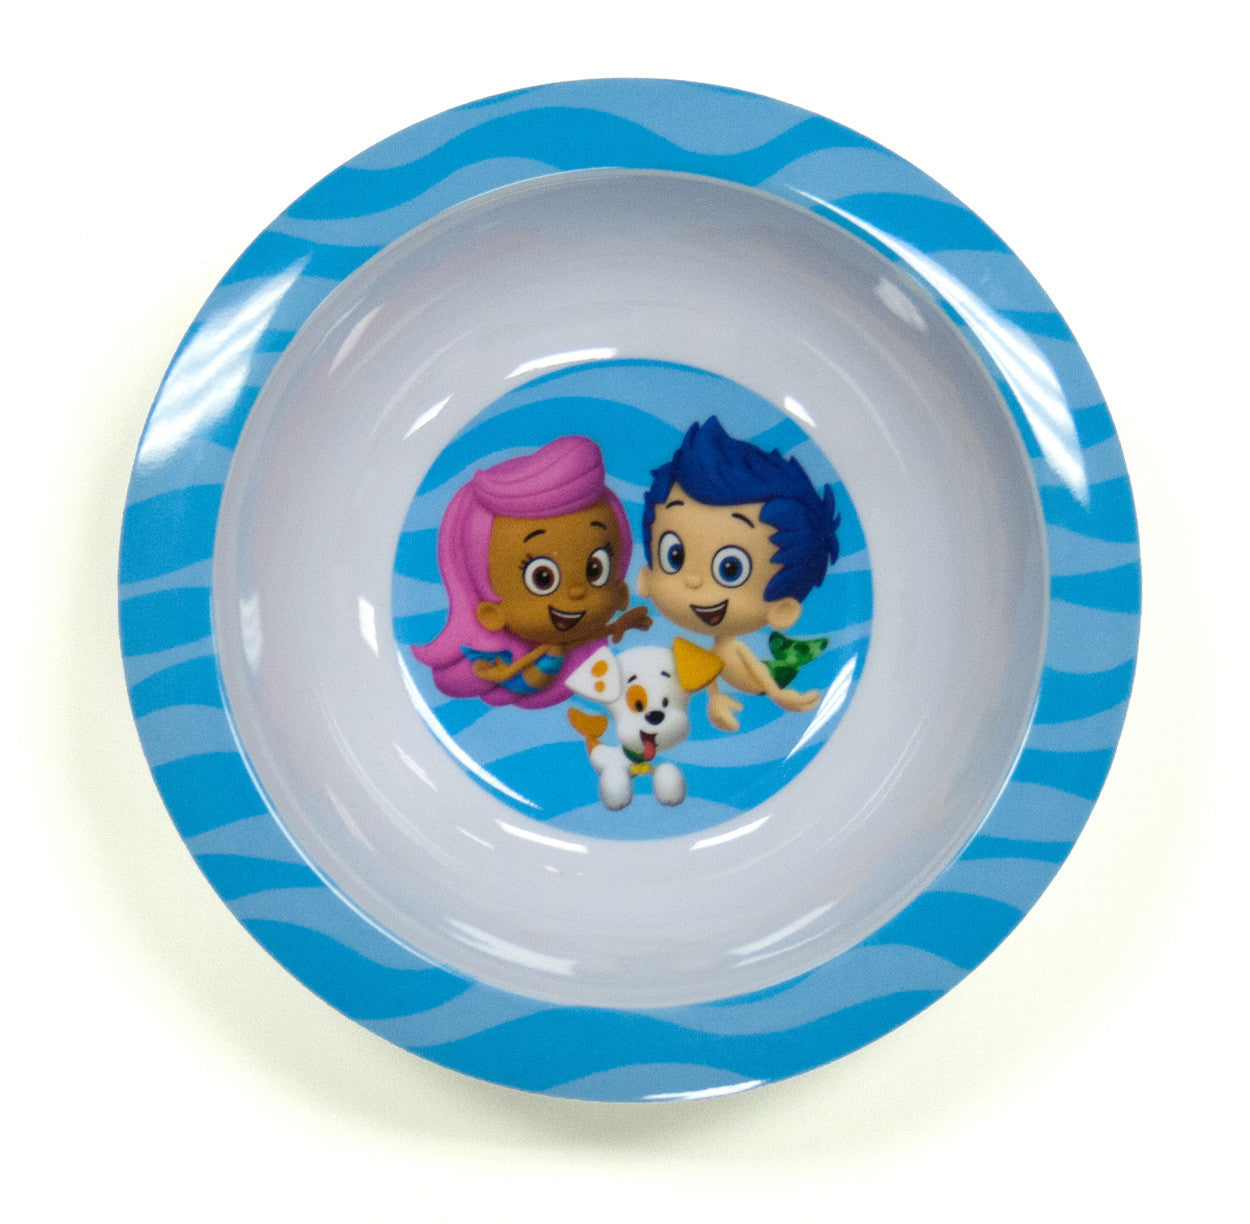 Bubble Guppies Wave Melamine Bowl - nickelodeonstore.co.uk